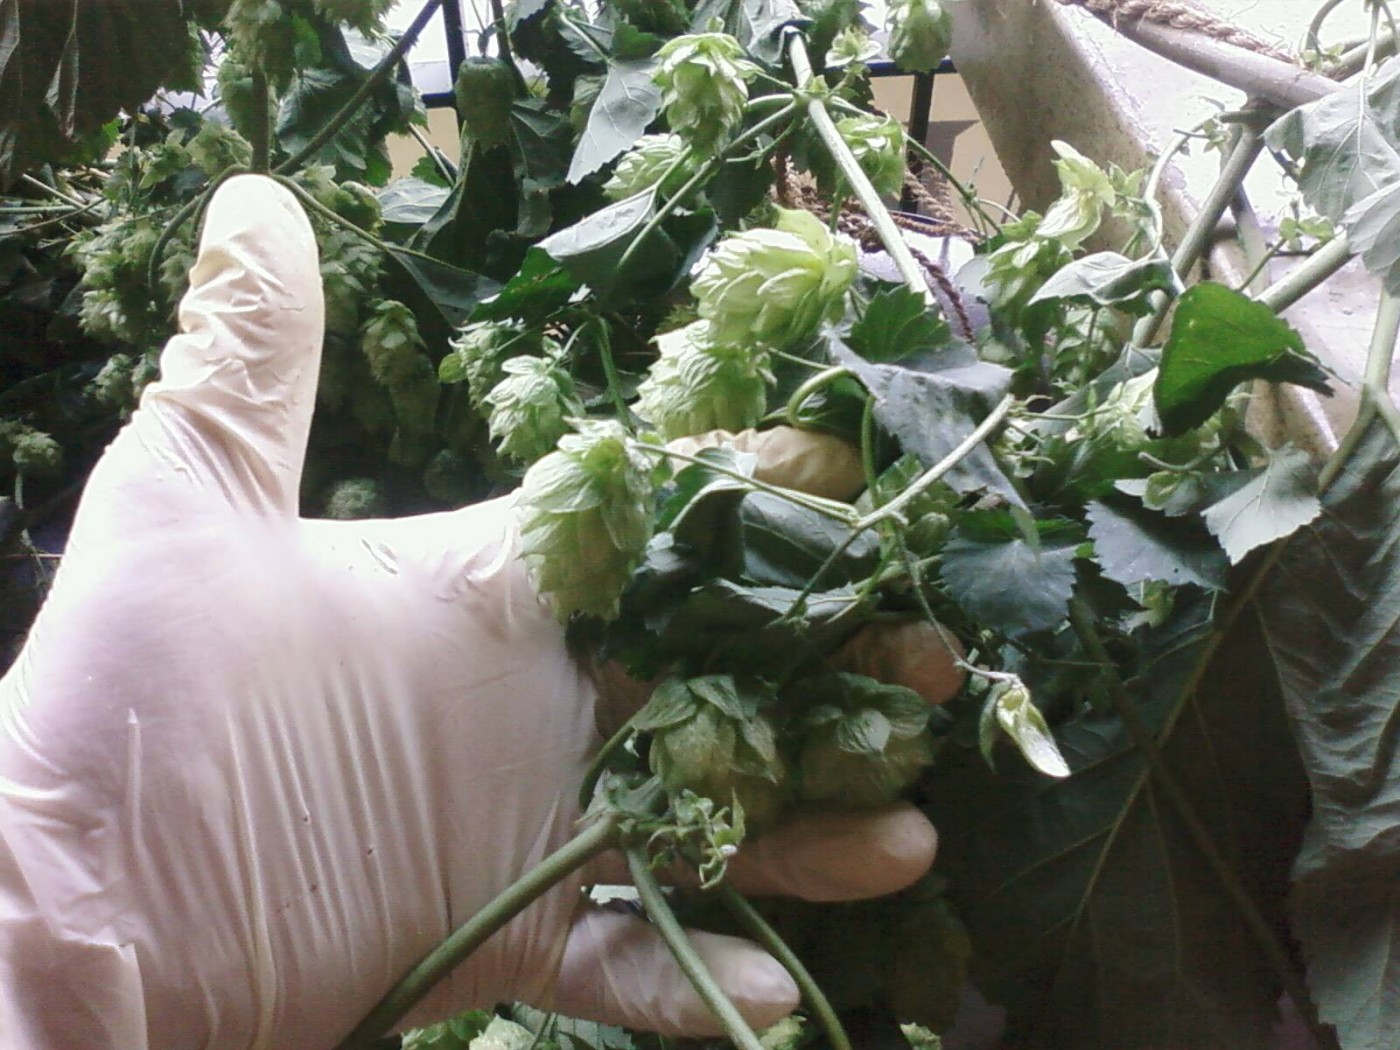 Picking Hops With Wynkoop Brewery